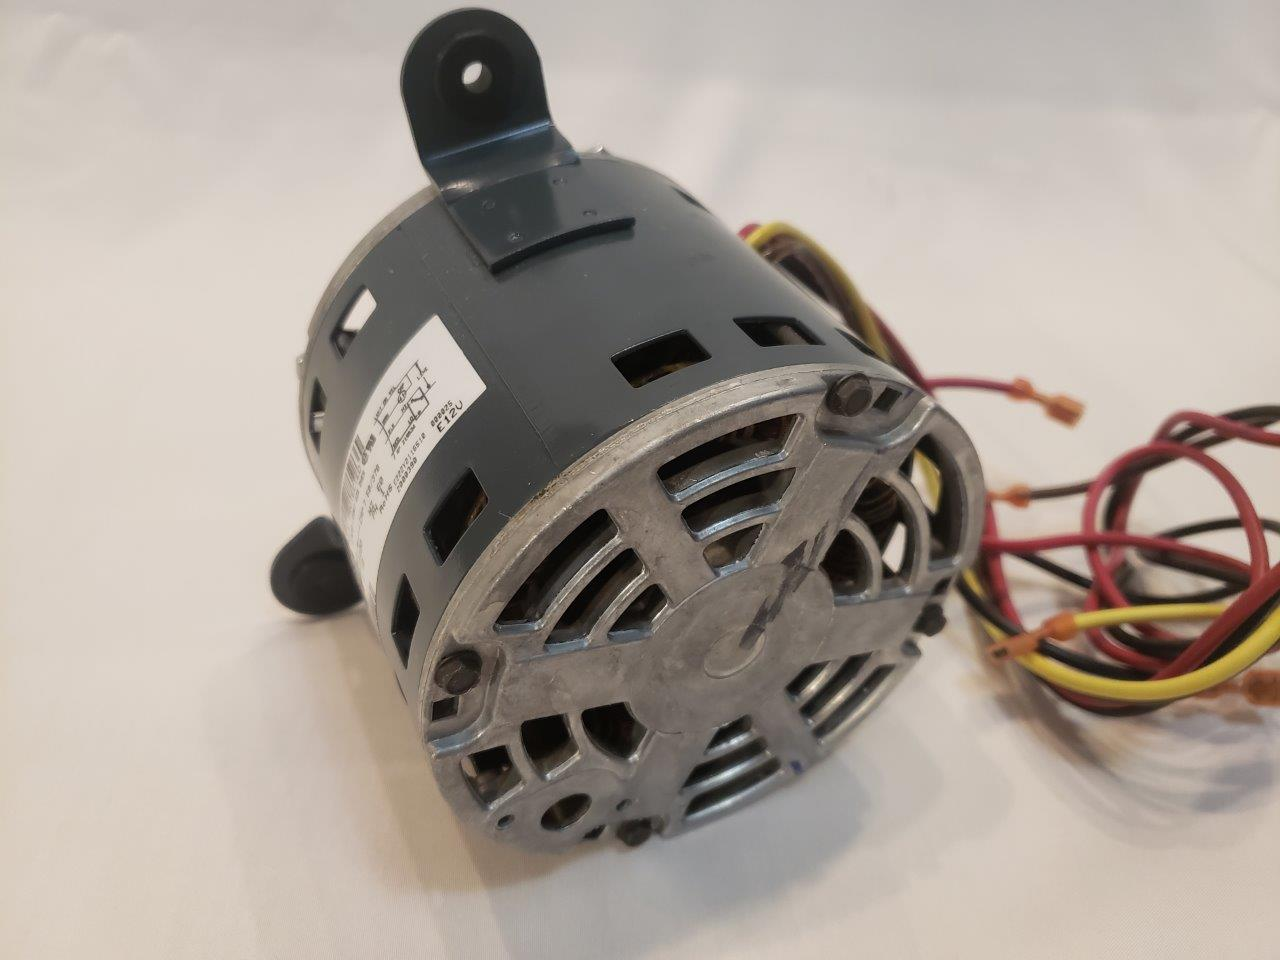 Fan Motor 1/4 hp, 208-230V, 1 ph 1620/1400 rpm 21061131 Genteq Friedrich